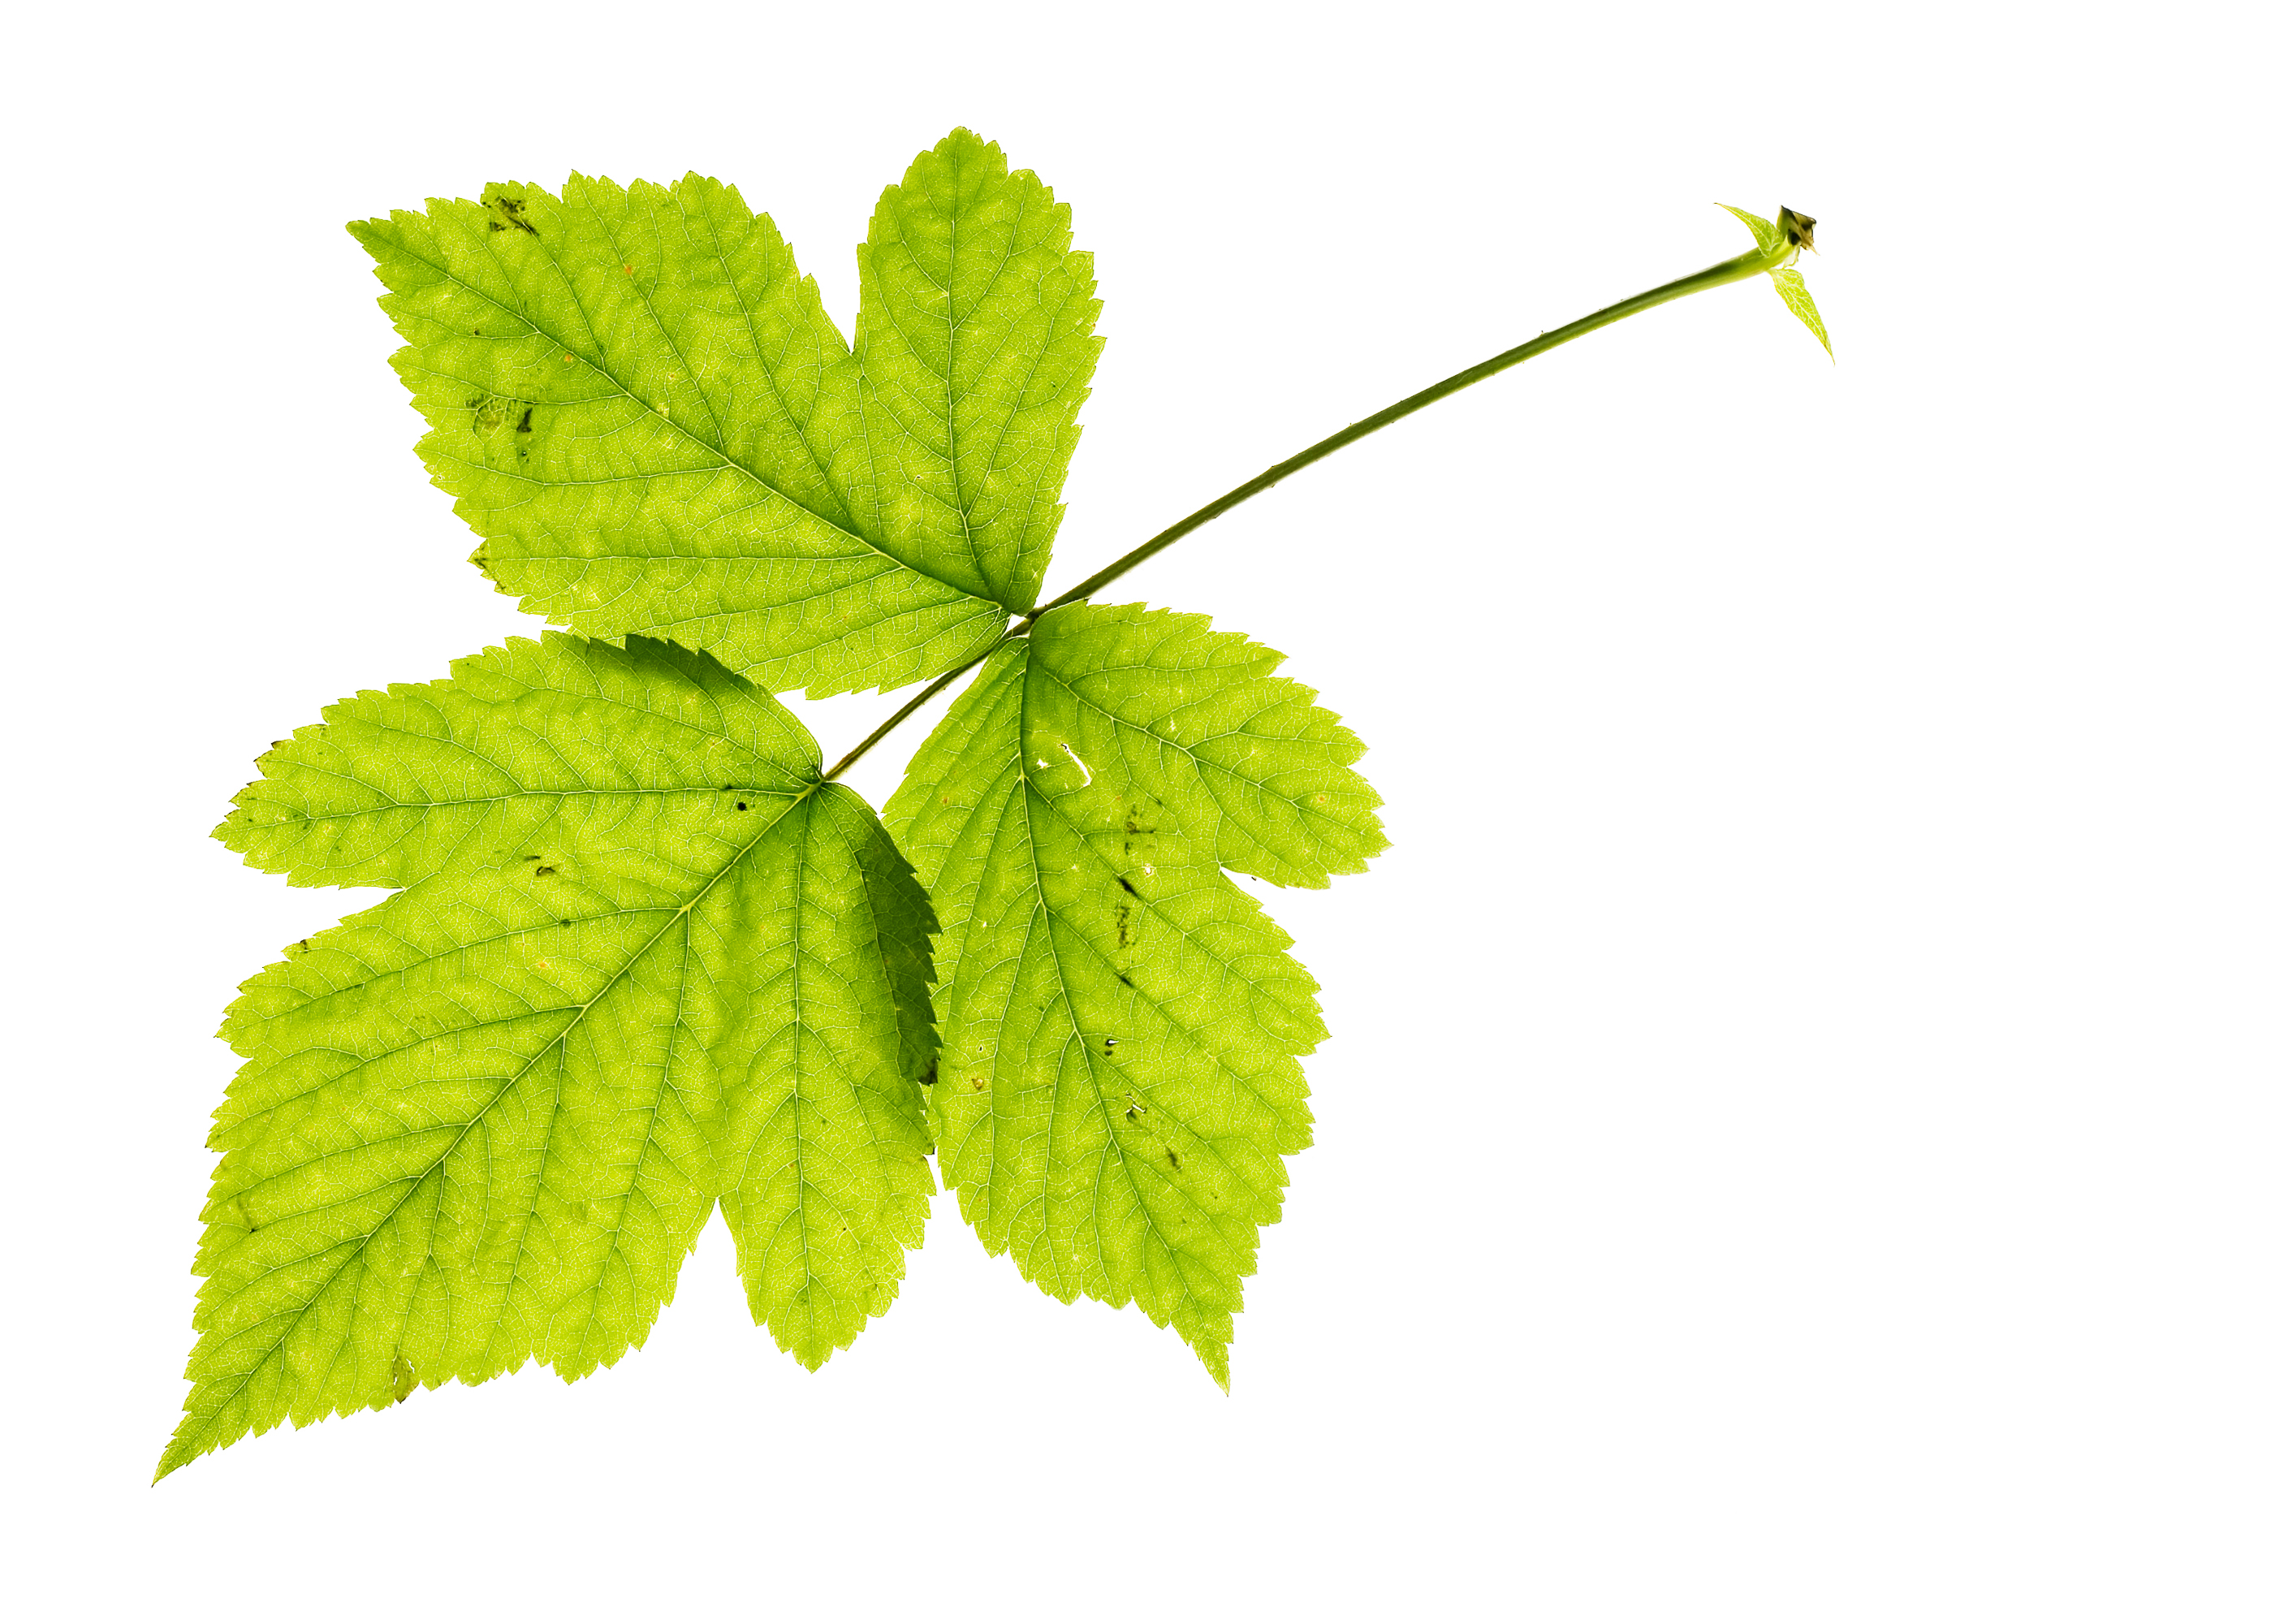 Green leaf, Agriculture, Small, New, Newlife, HQ Photo